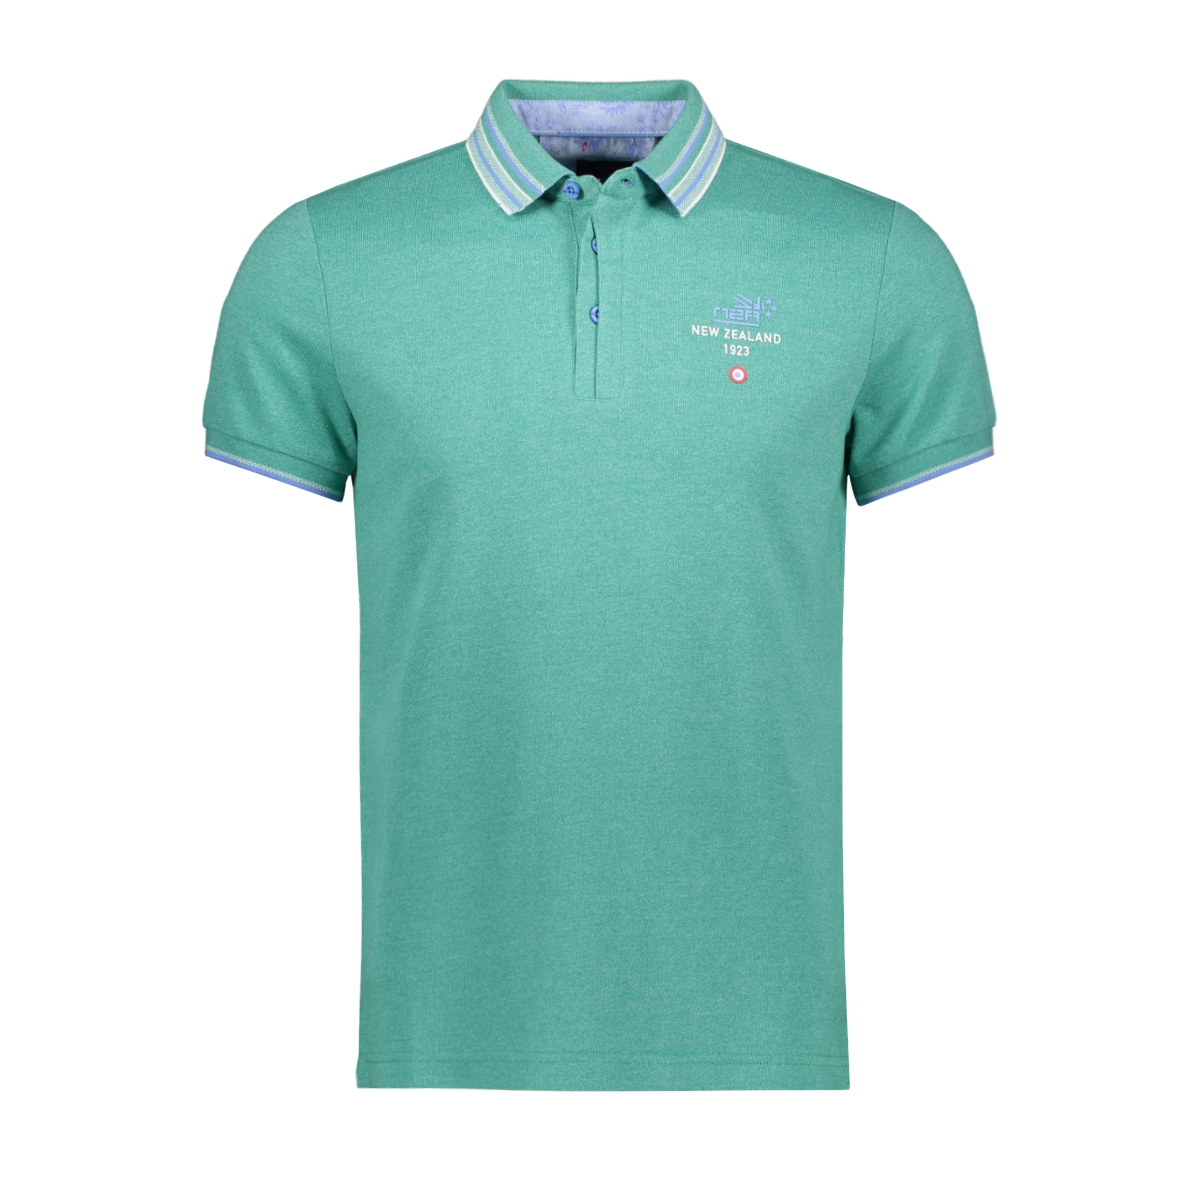 barfoot 20bn113 nza polo 493 new green